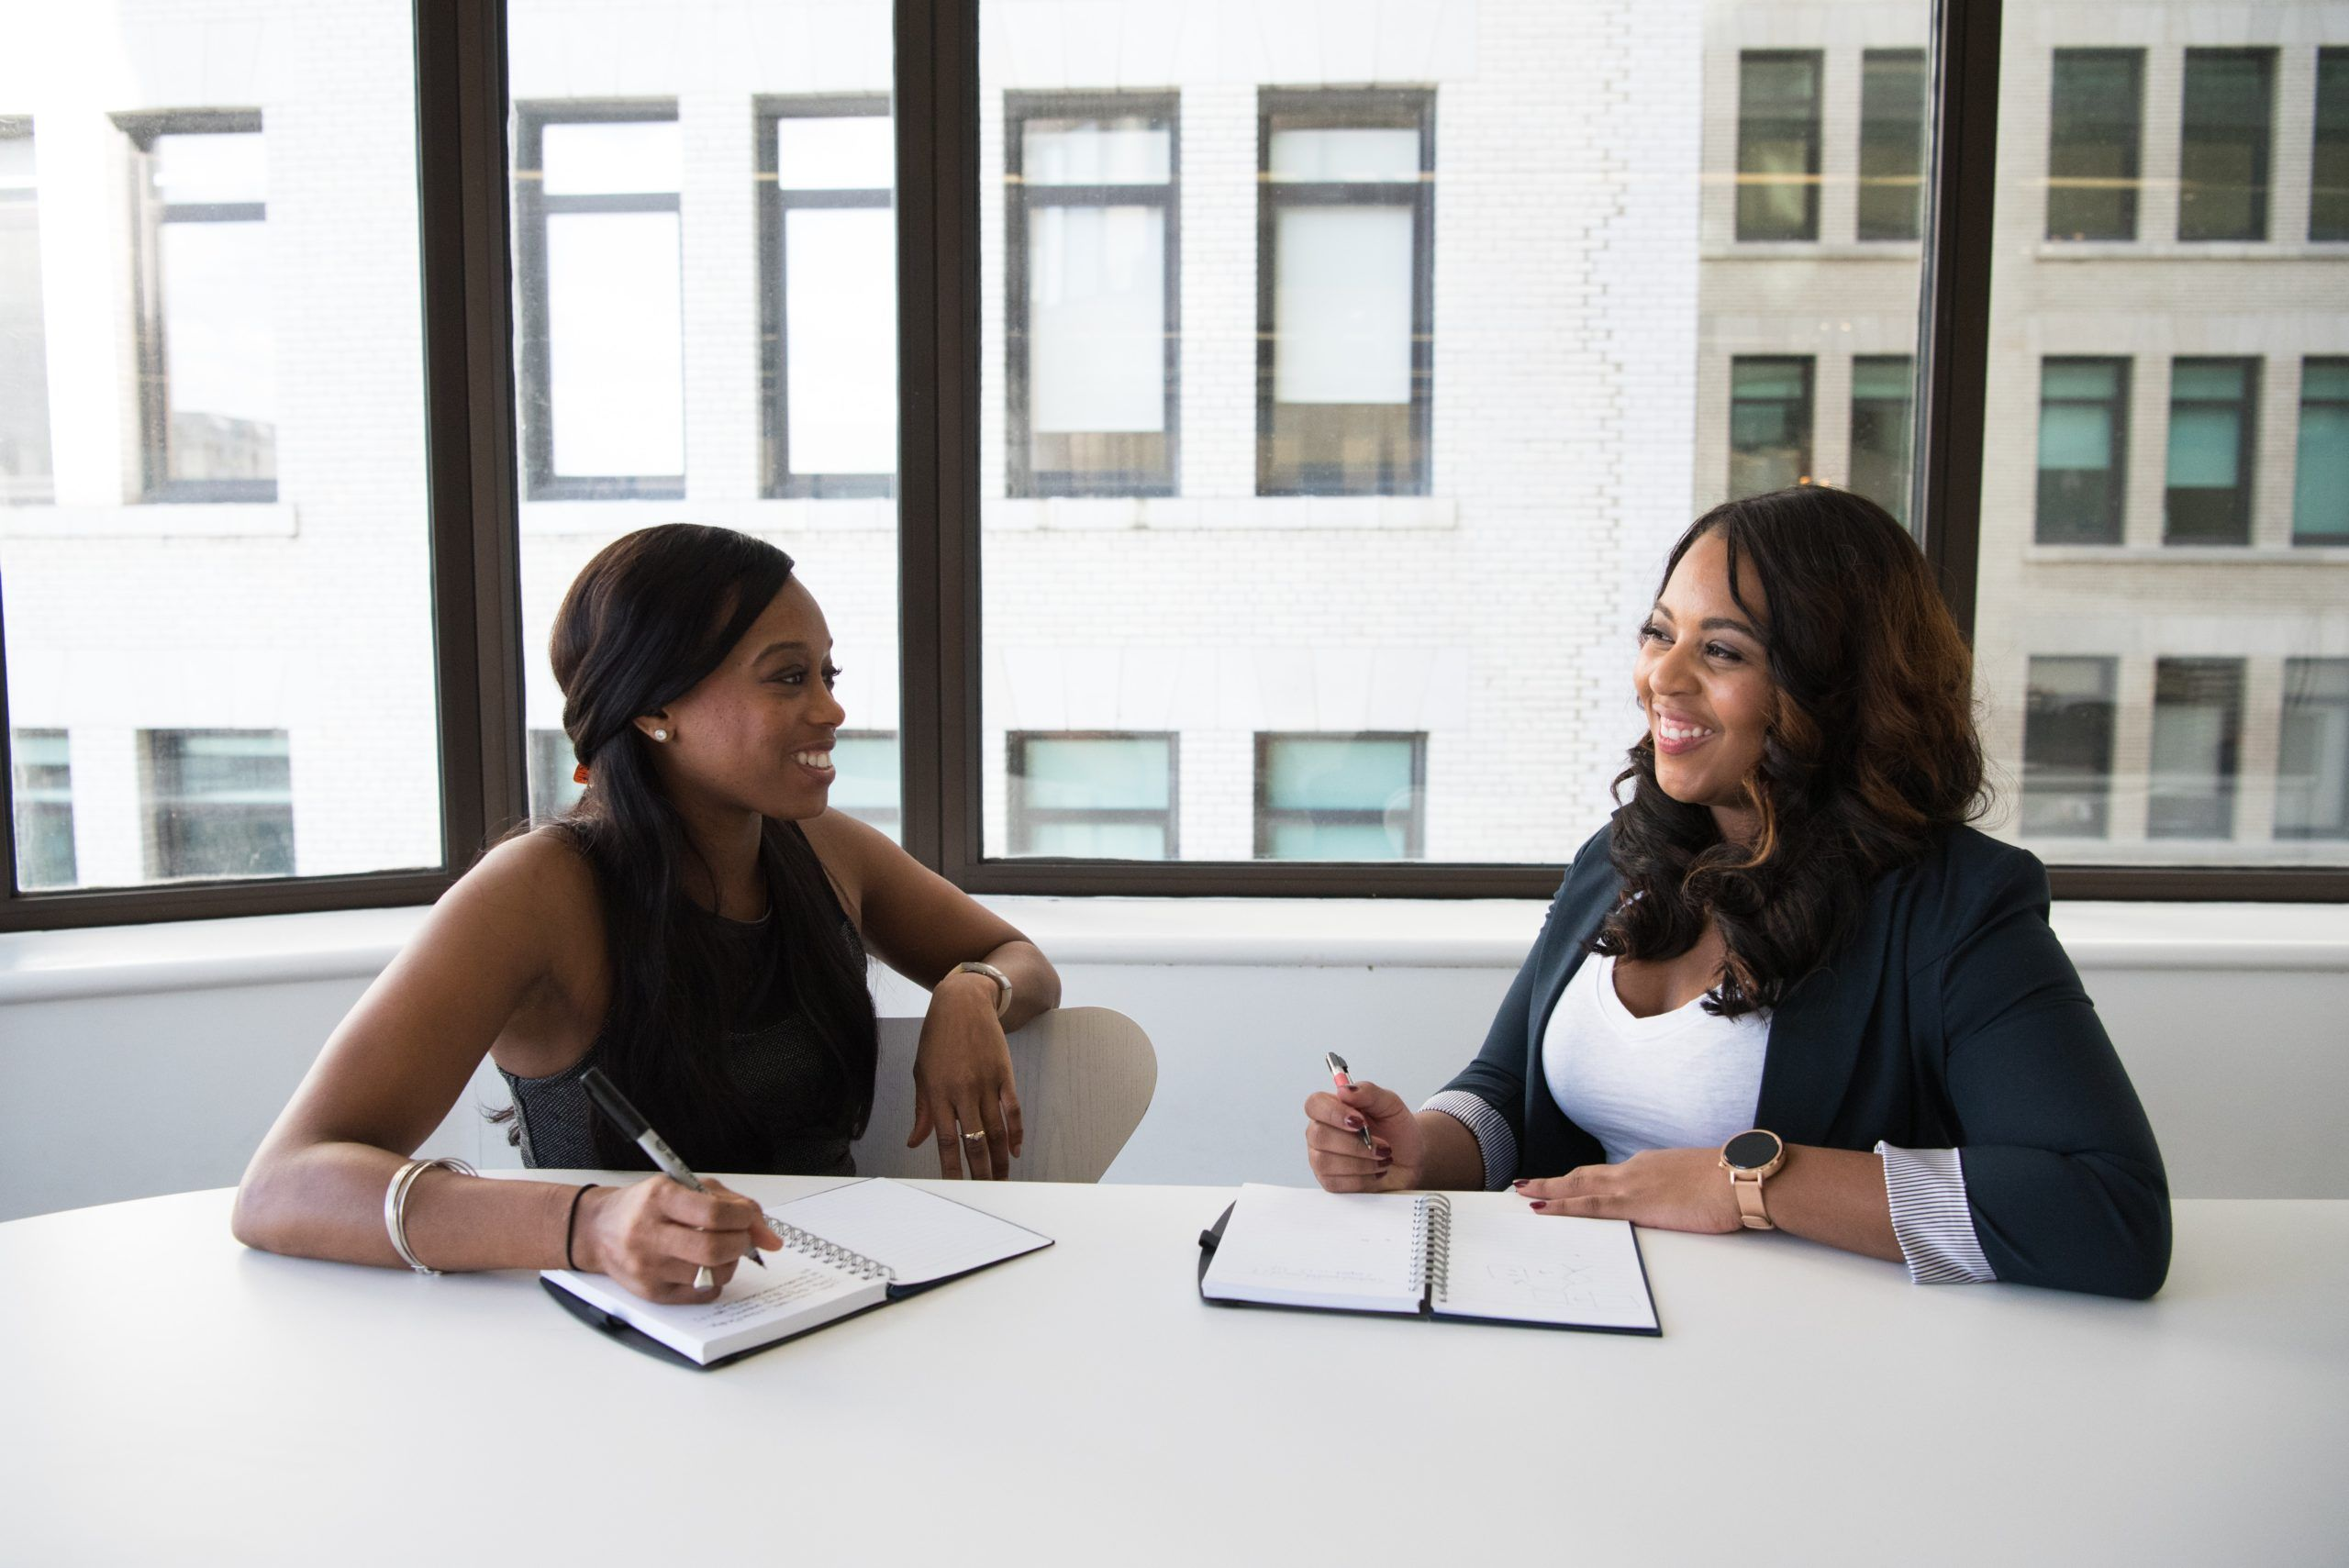 Unsure of how to ace an interview? There are simple interviewing rules to keep in mind to land your next dream job.